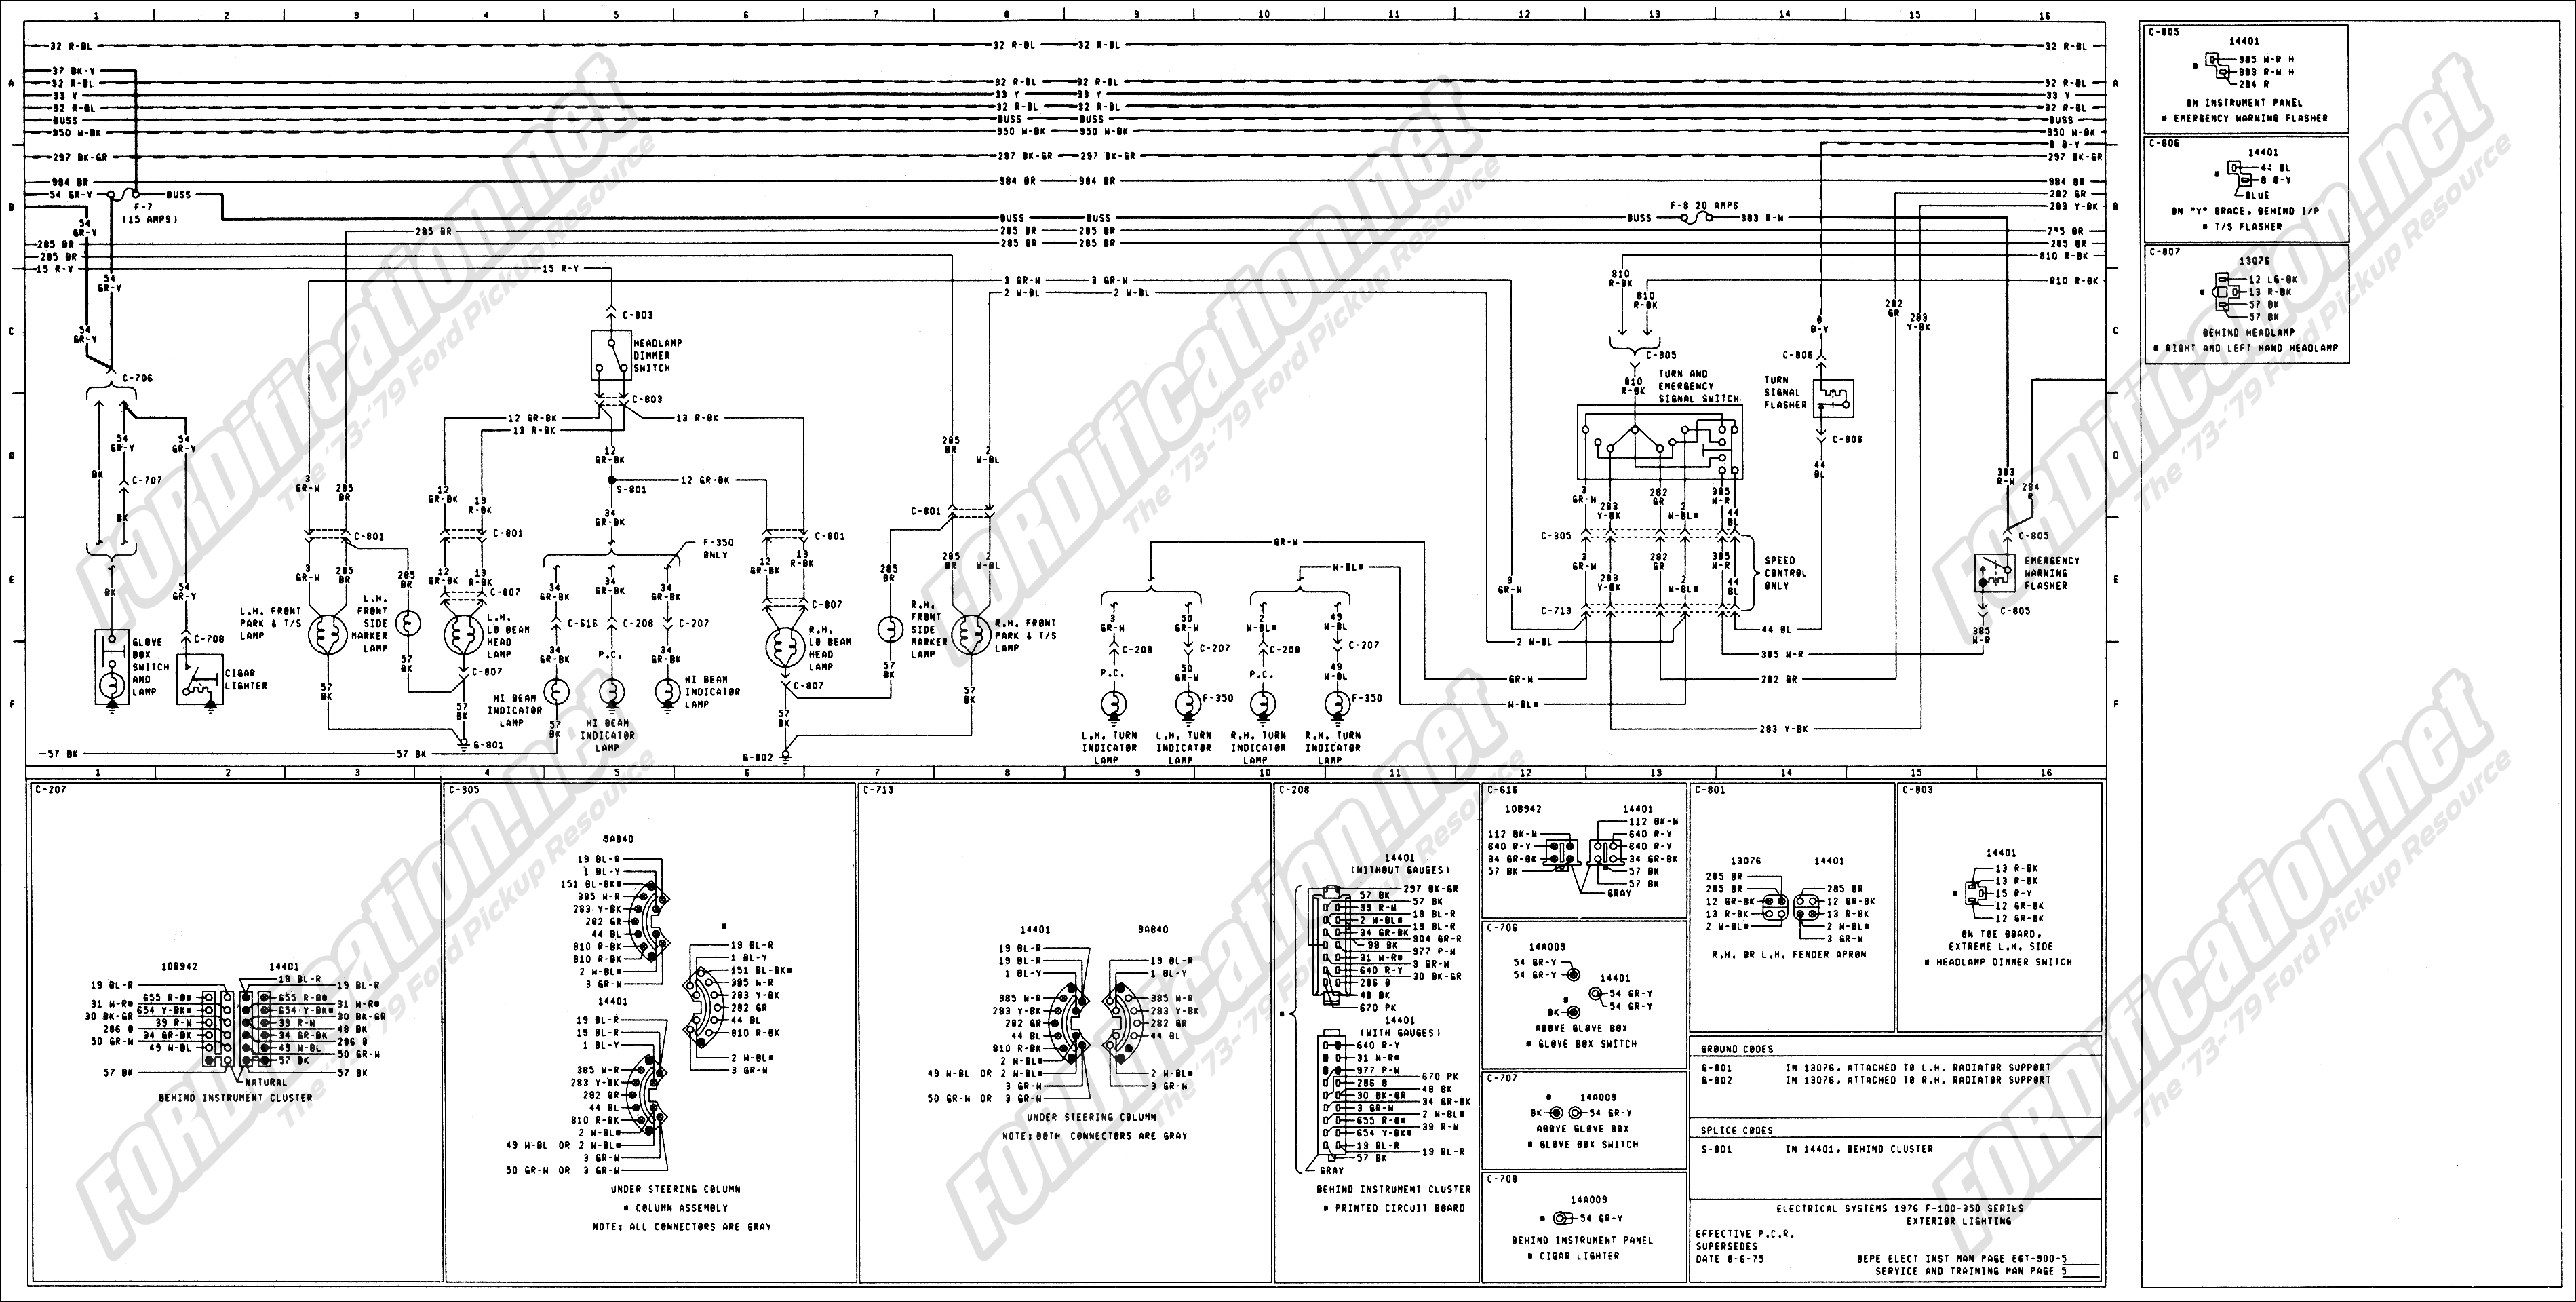 1980 Ford F 150 Ignition Wiring Diagram - Wiring Diagrams Hubs - Ford Trailer Wiring Diagram